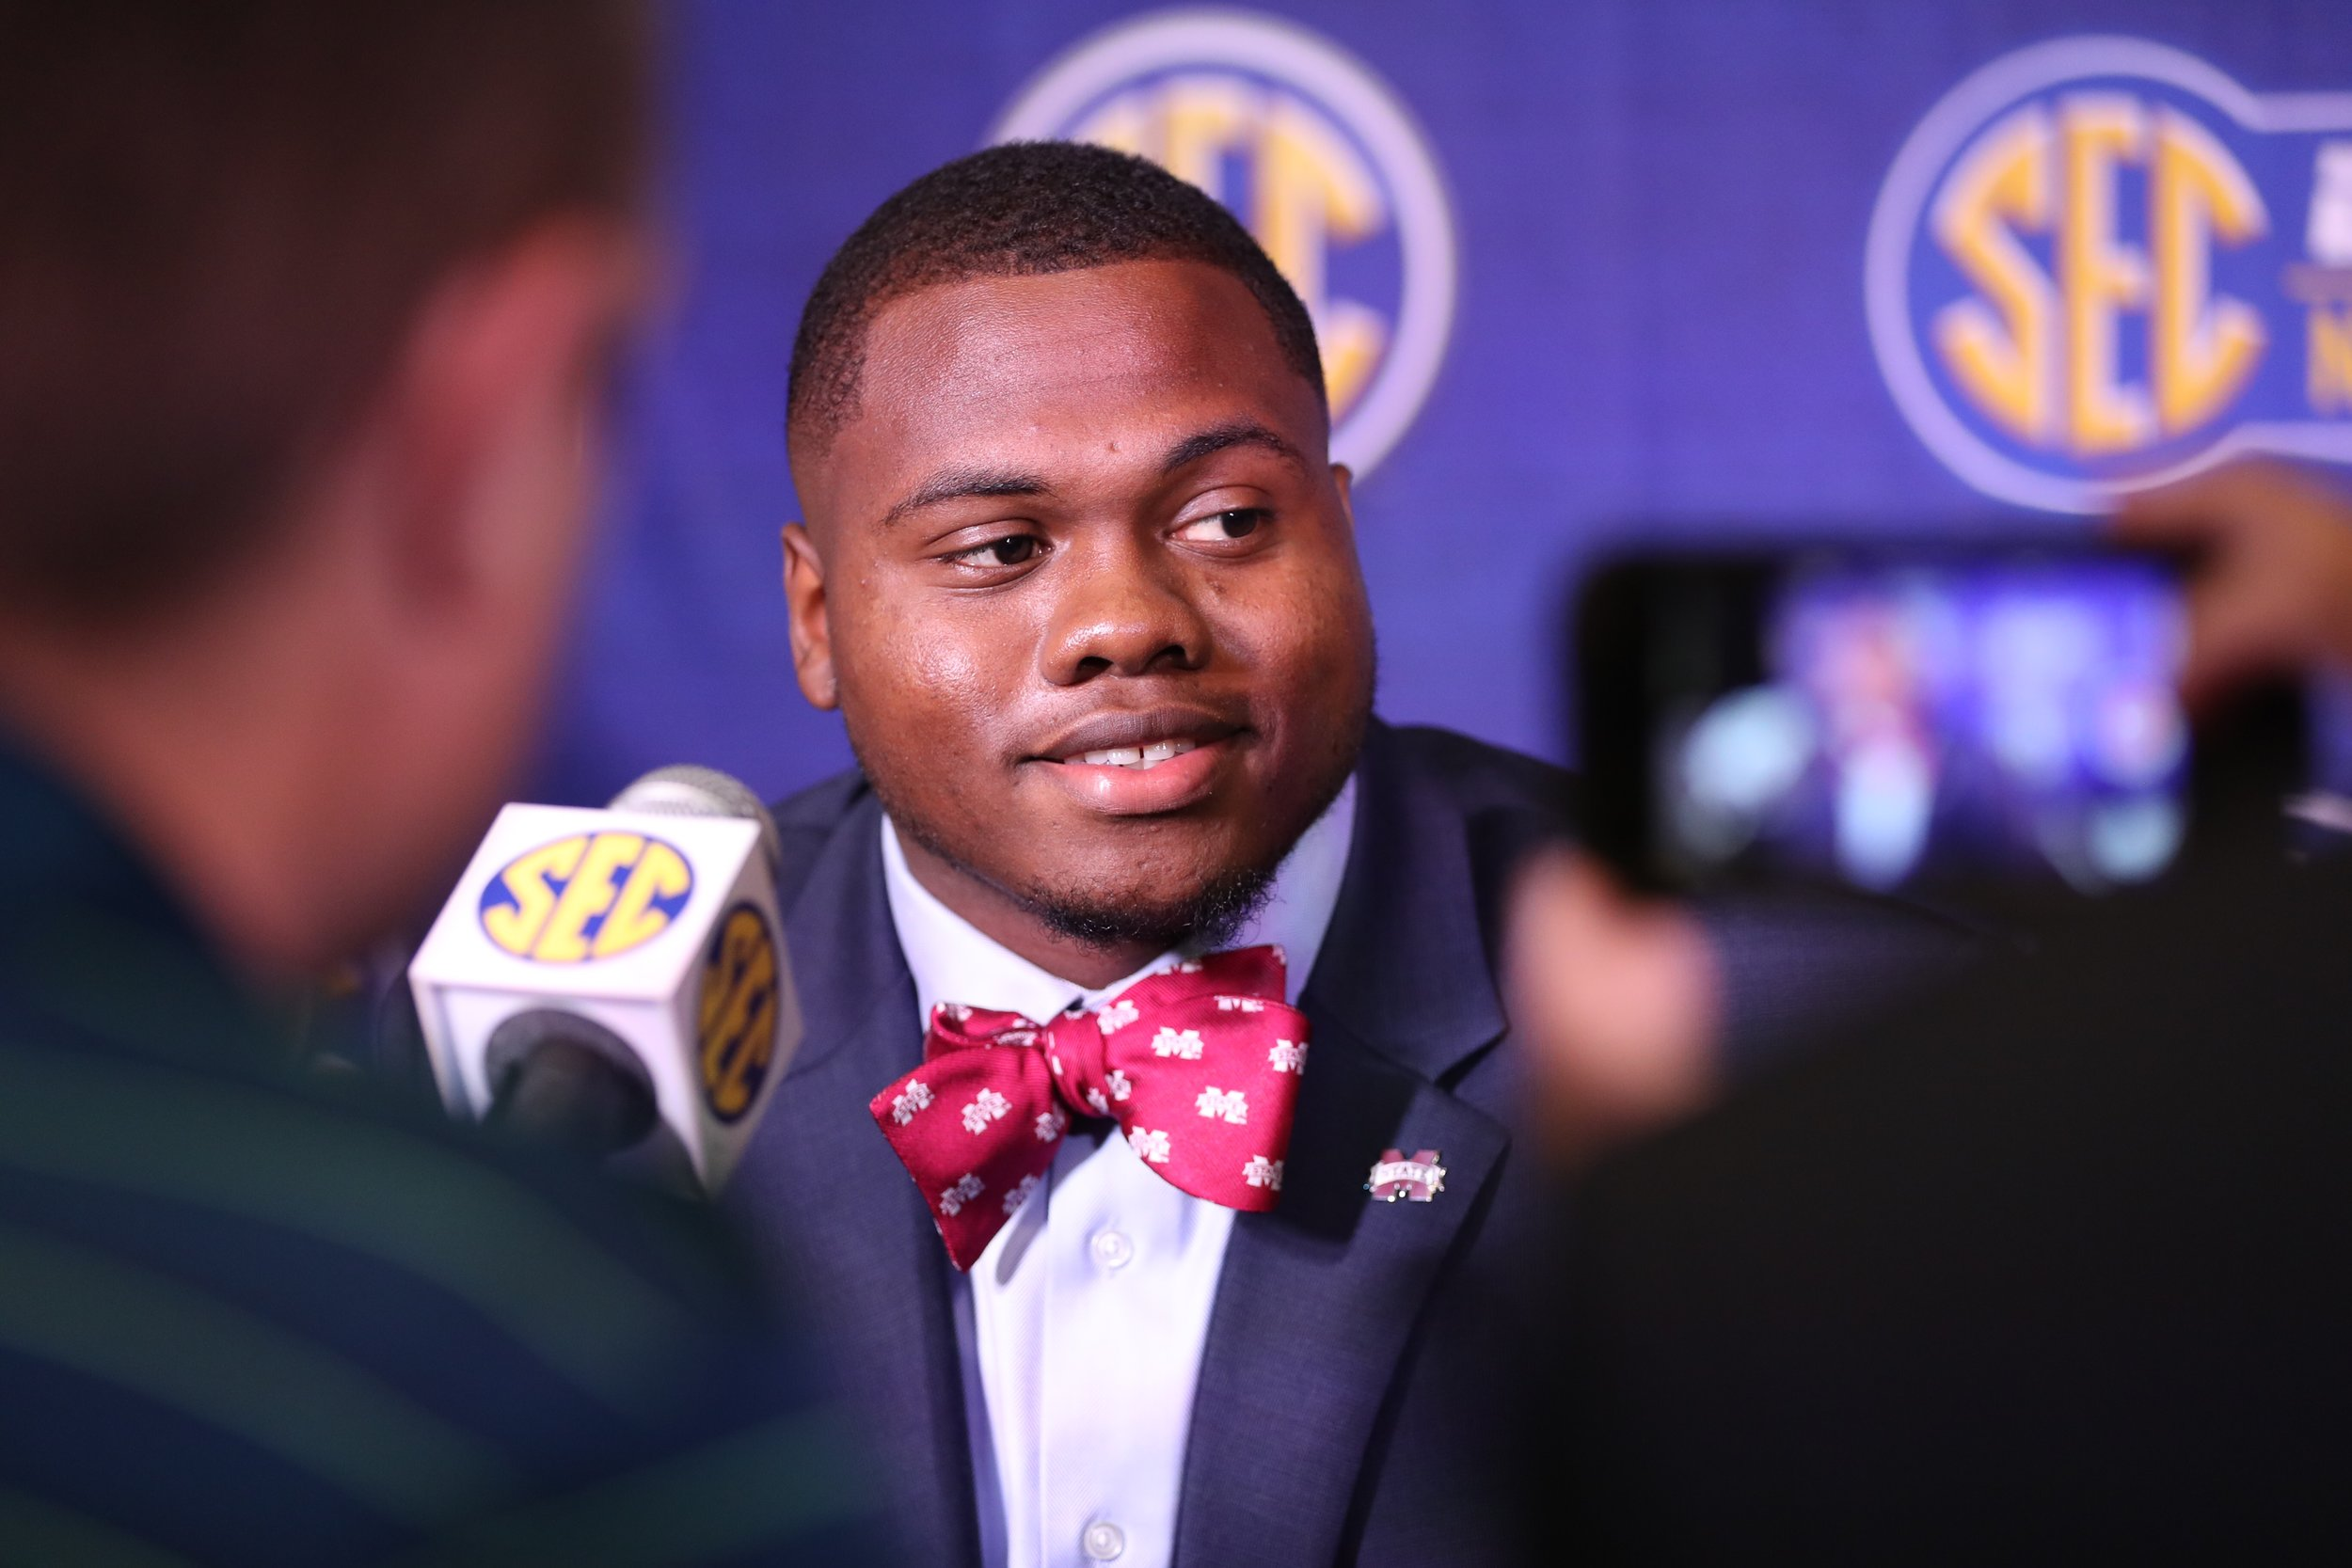 Erroll Thompson fielding questions at SEC Media Days. Photo by Aaron Cornia courtesy of Mississippi State Athletics.